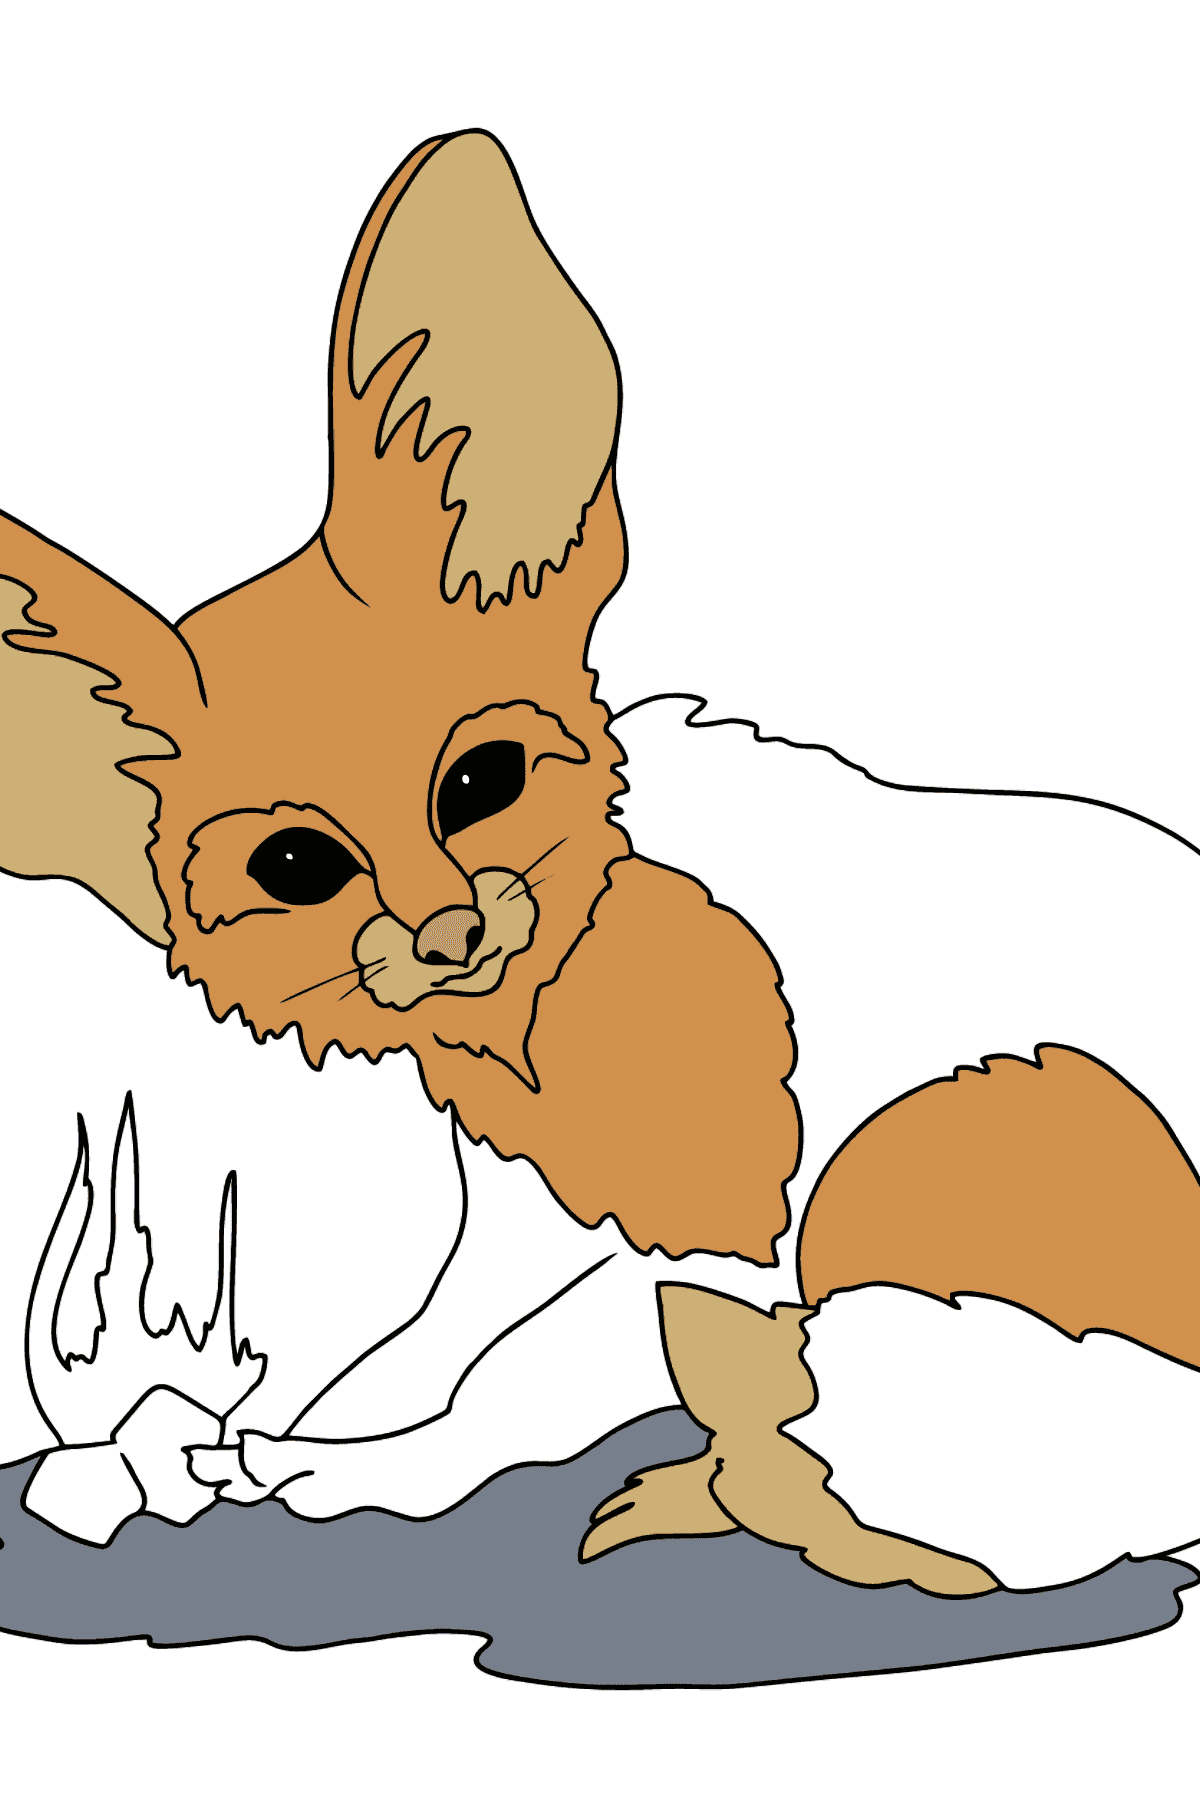 Coloring Page - A Fennec Fox or a Tiny Fox - Coloring Pages for Kids